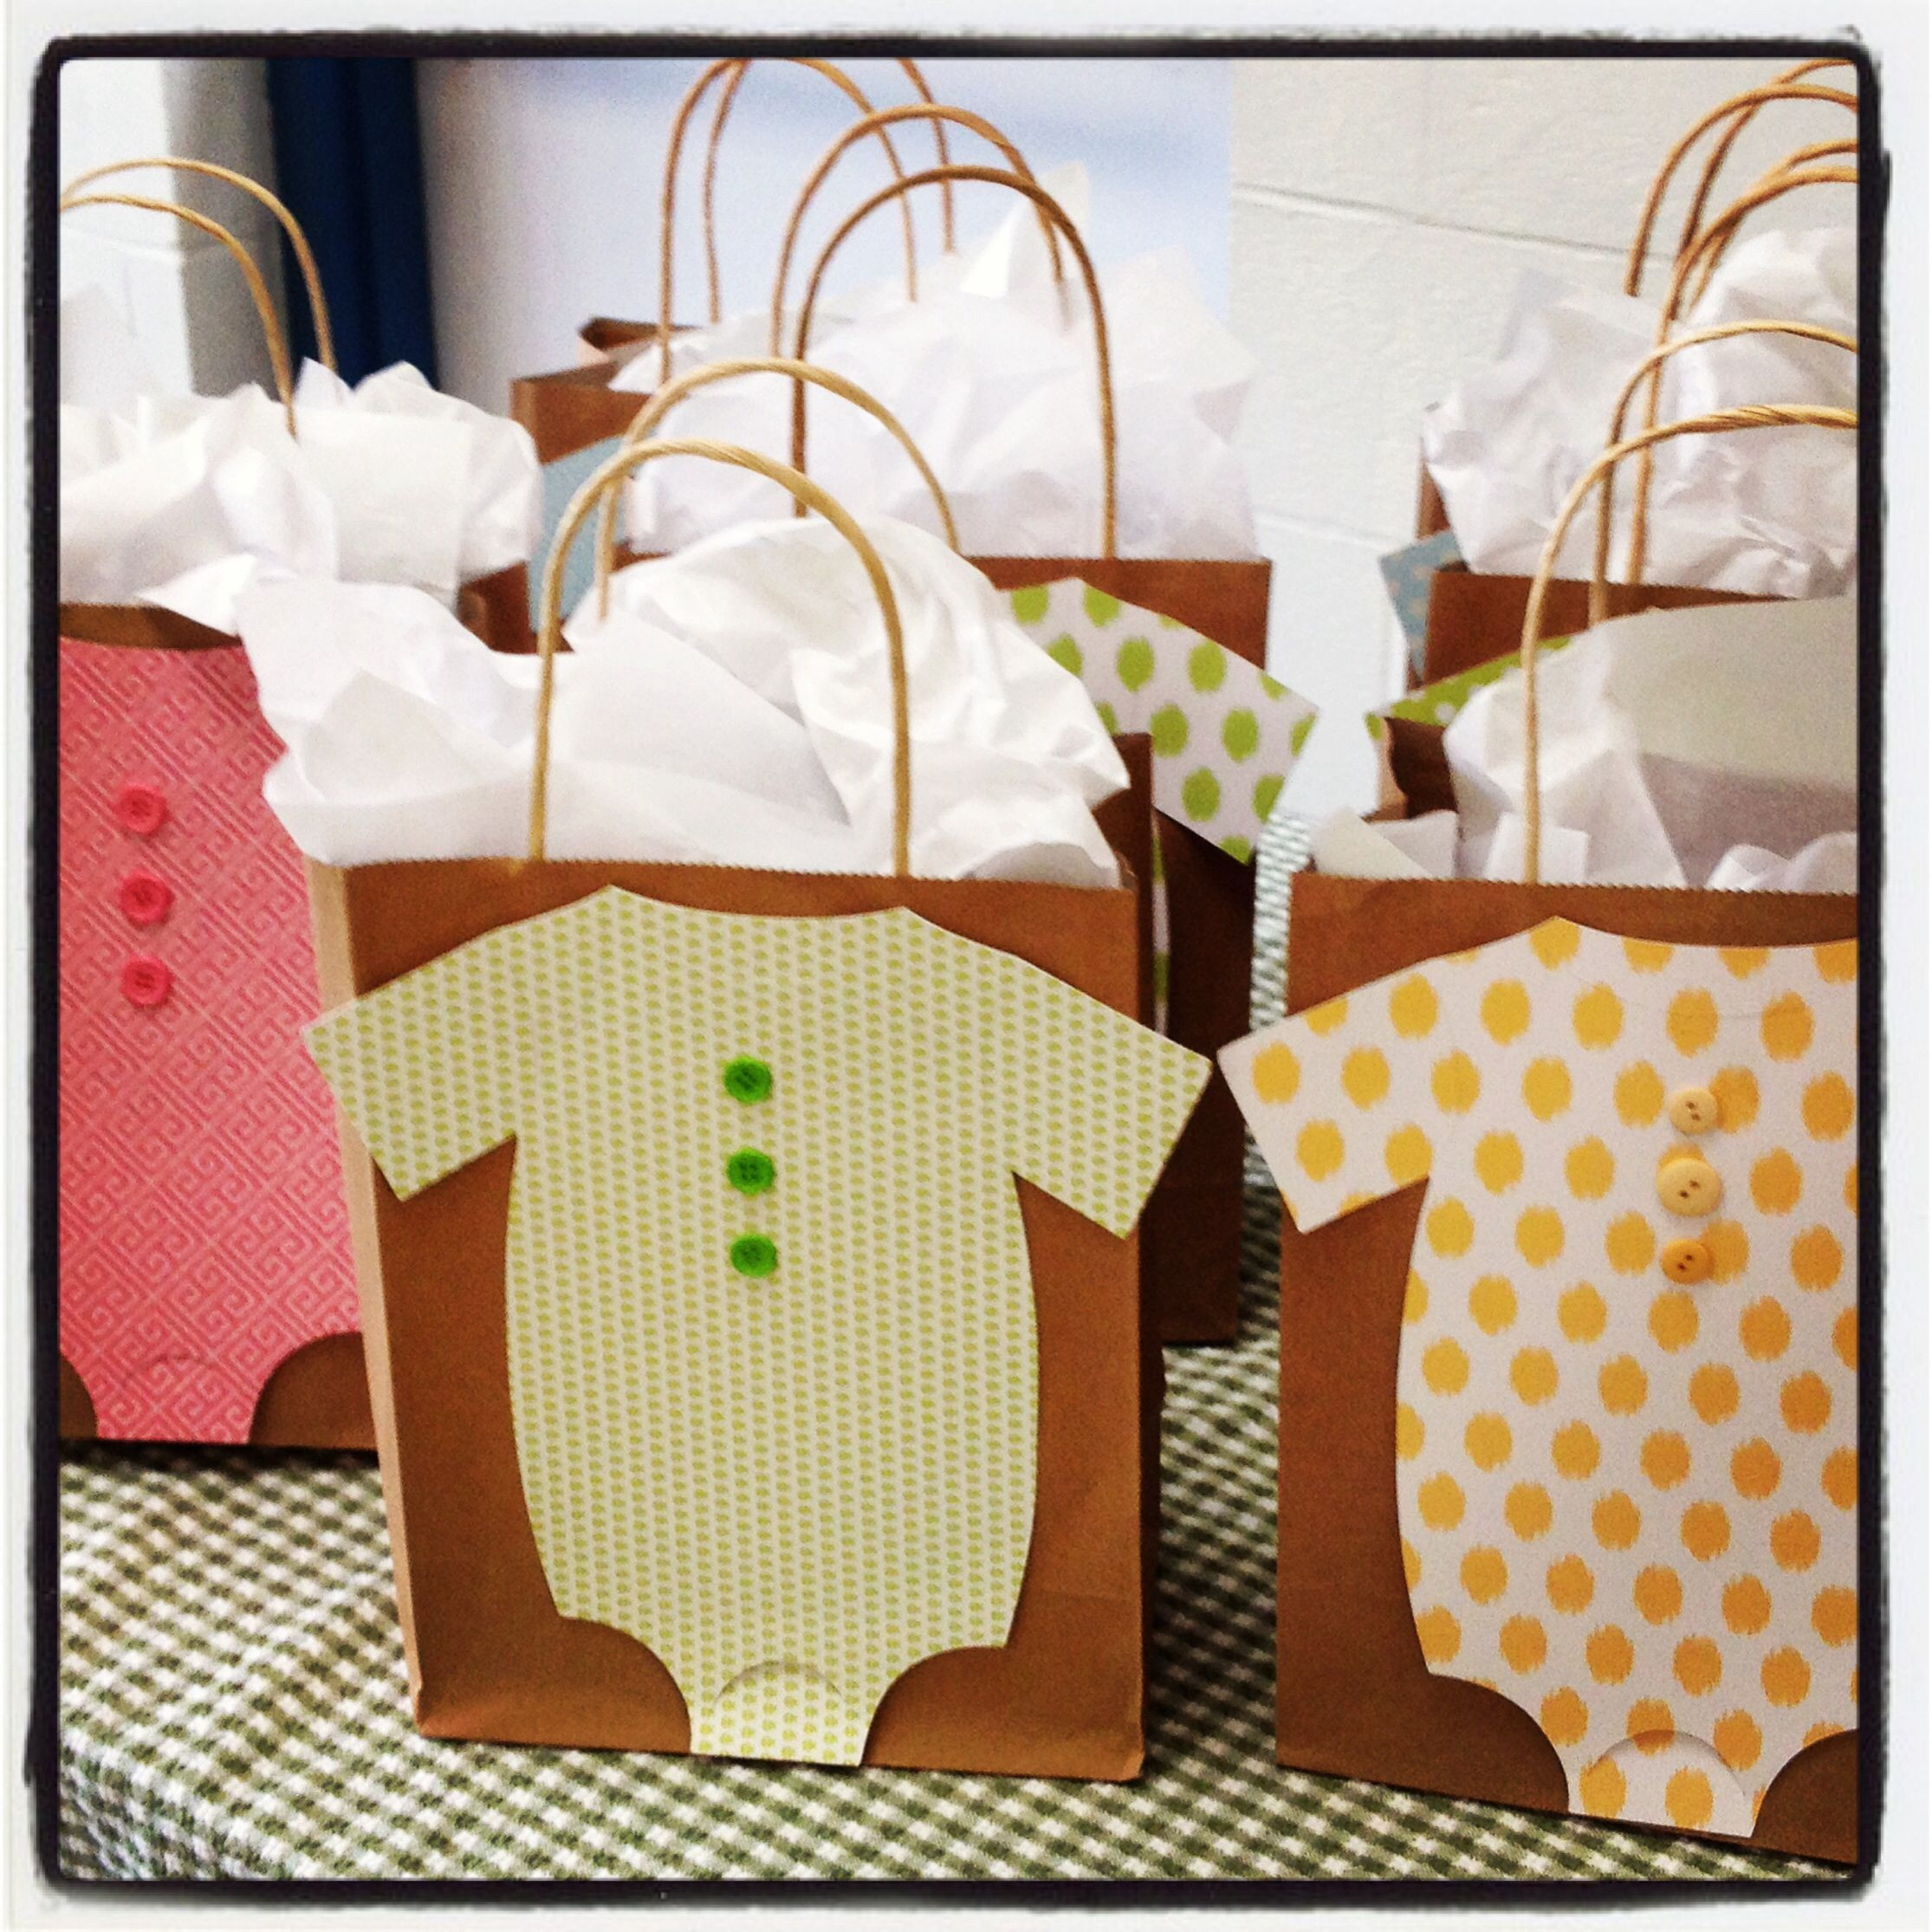 Baby Shower Gift Bags For Guests Ideas  Baby Shower Prize Bag Babyshower Ideas